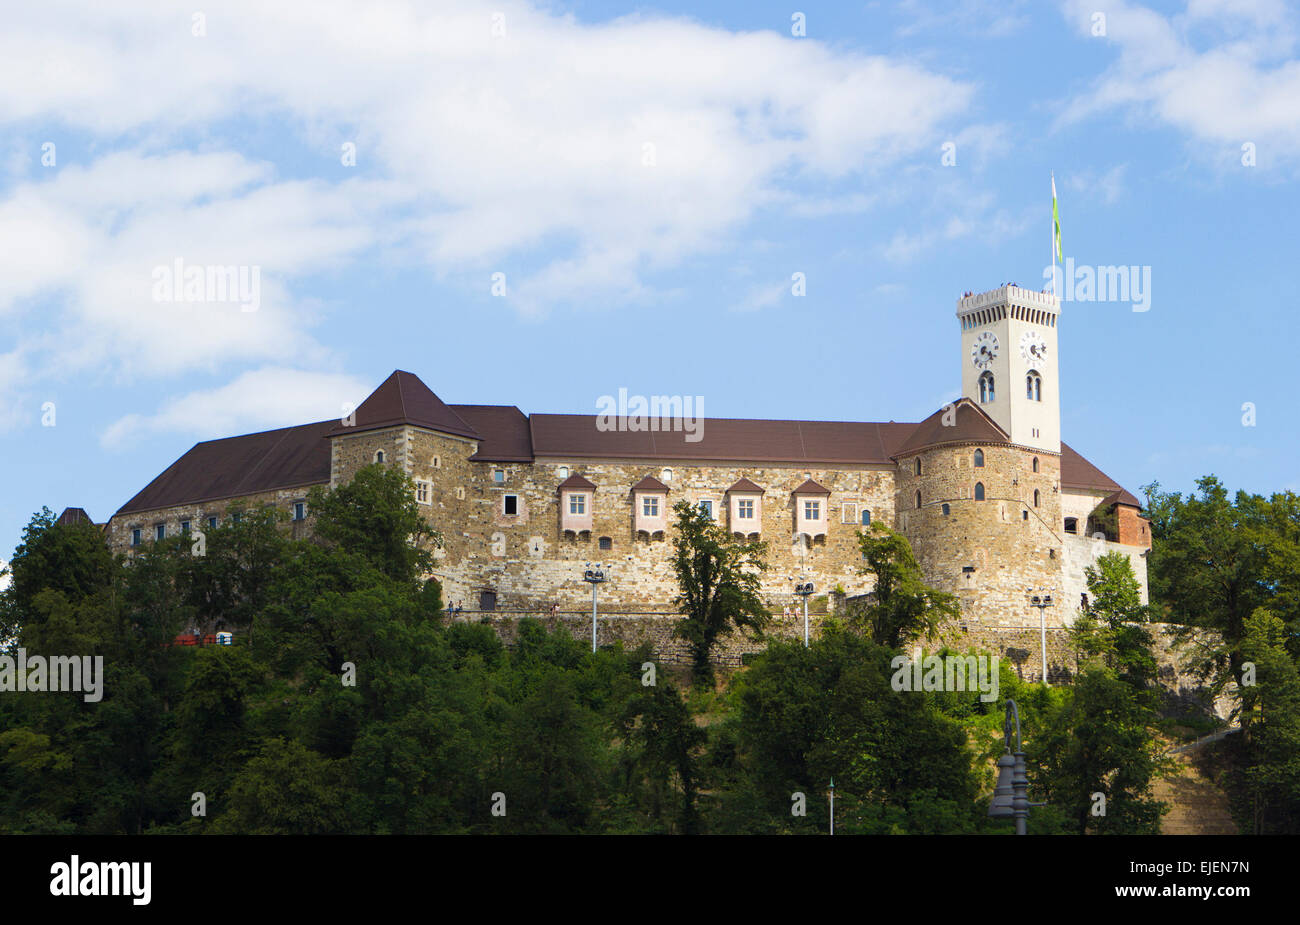 View of the castle in Slovenia's capital Ljubljana - Stock Image